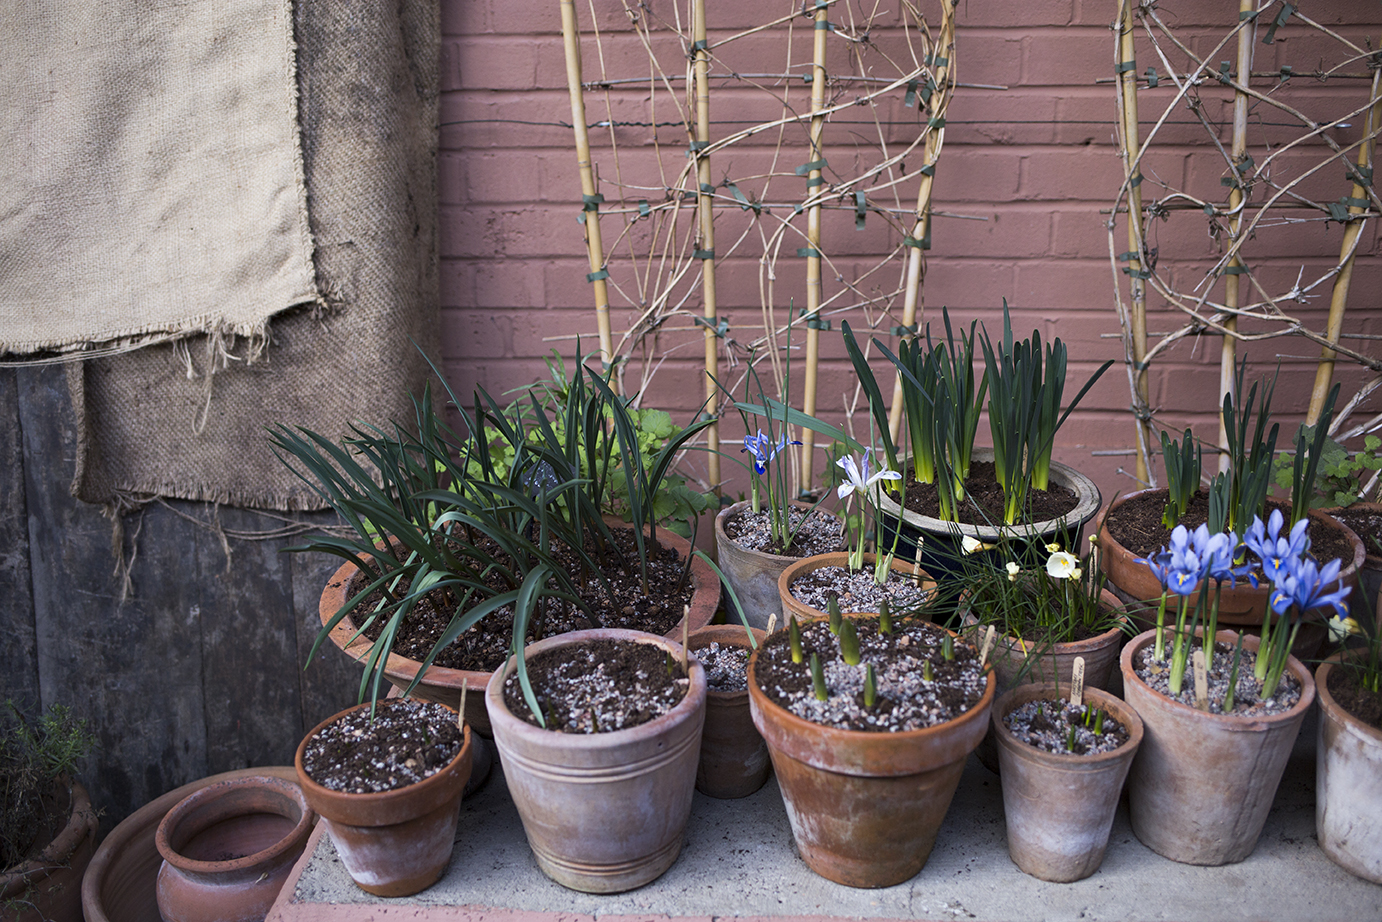 Tulip bulbs in pots | Aesme Studio London